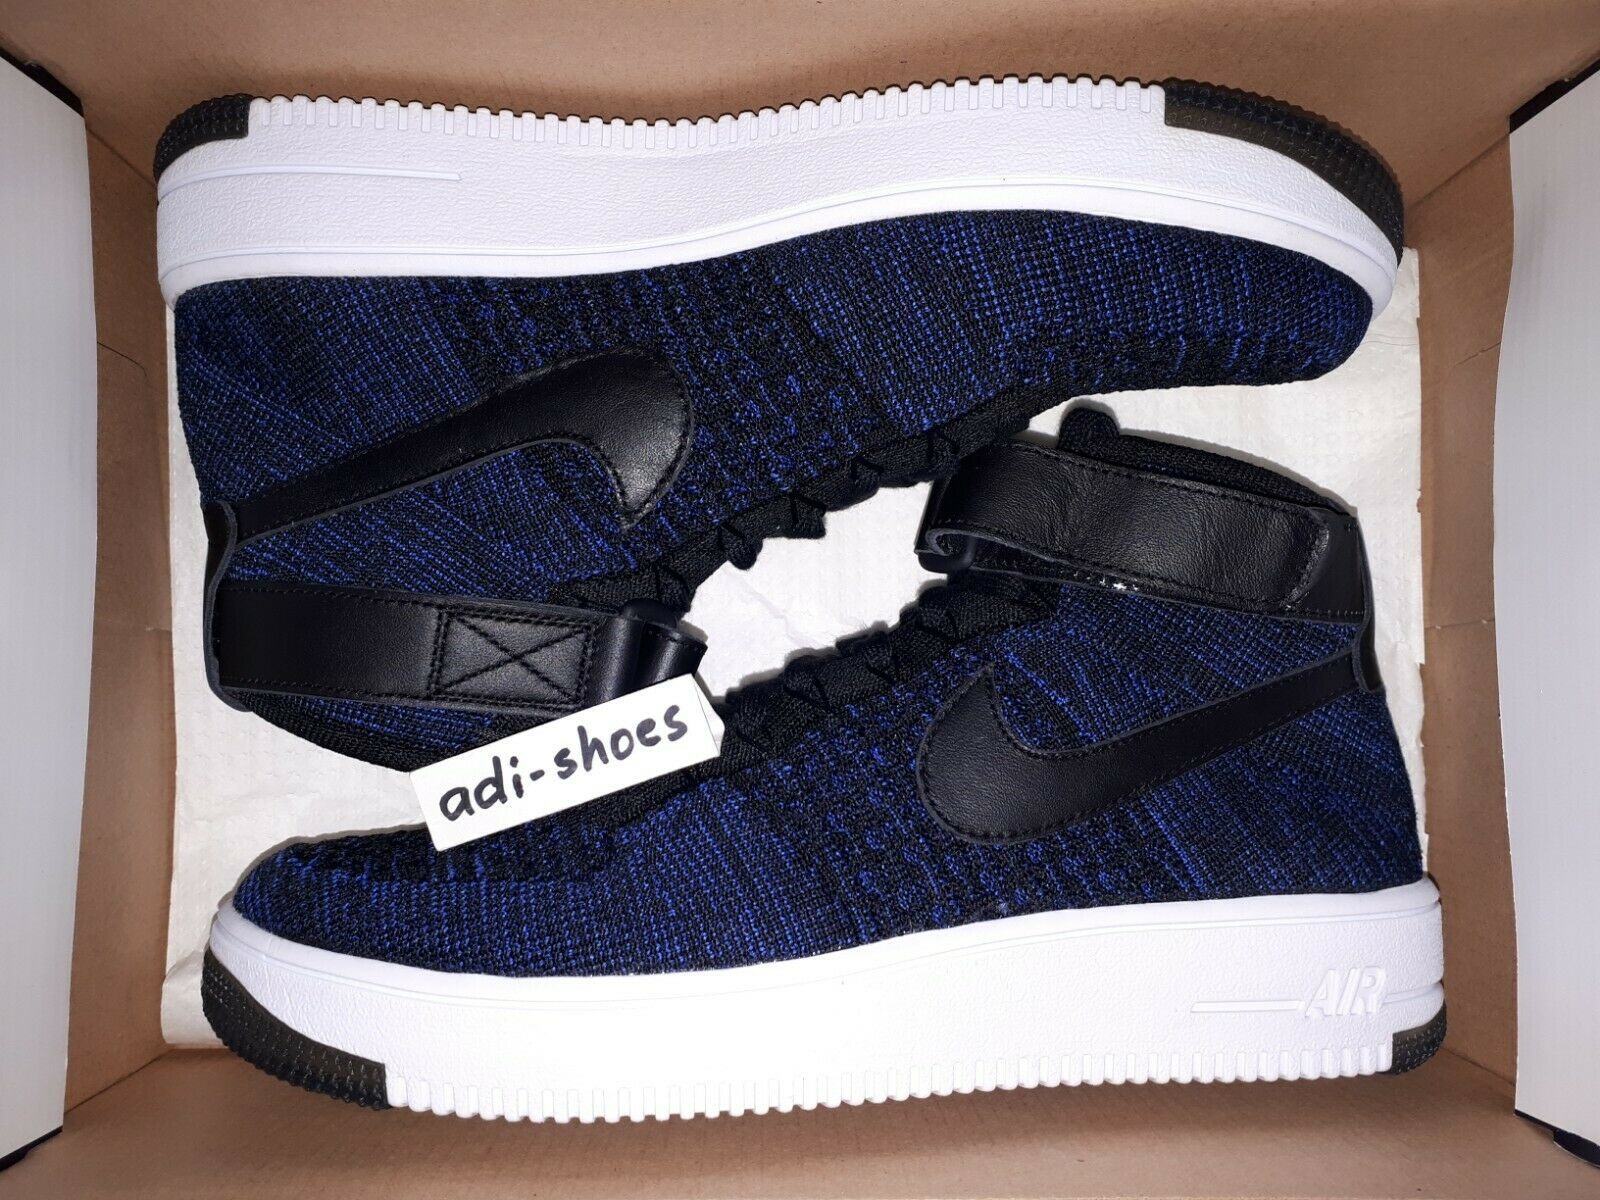 Nike Af1 Ultra Flyknit Mid Air Force 1 Navy Black Mens Casual Shoes 817420 400 UK 7.5